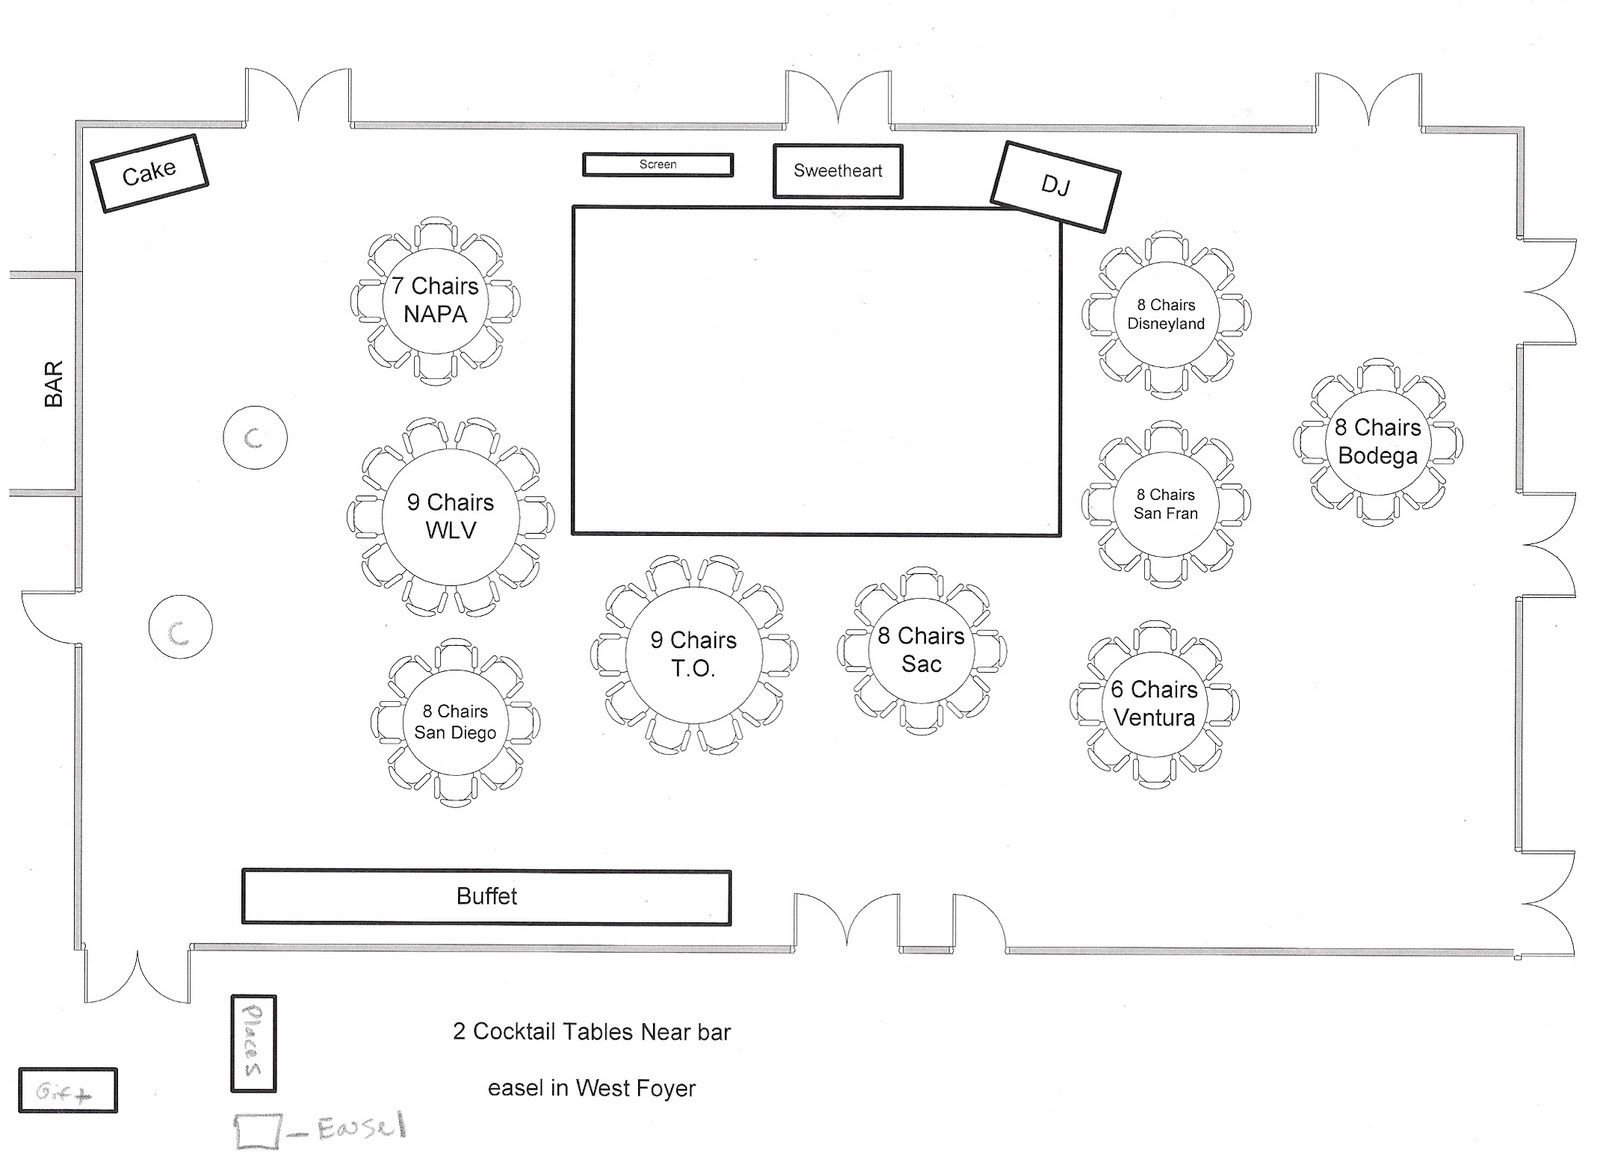 Sample seating diagram and floor plan for Wedding reception layout